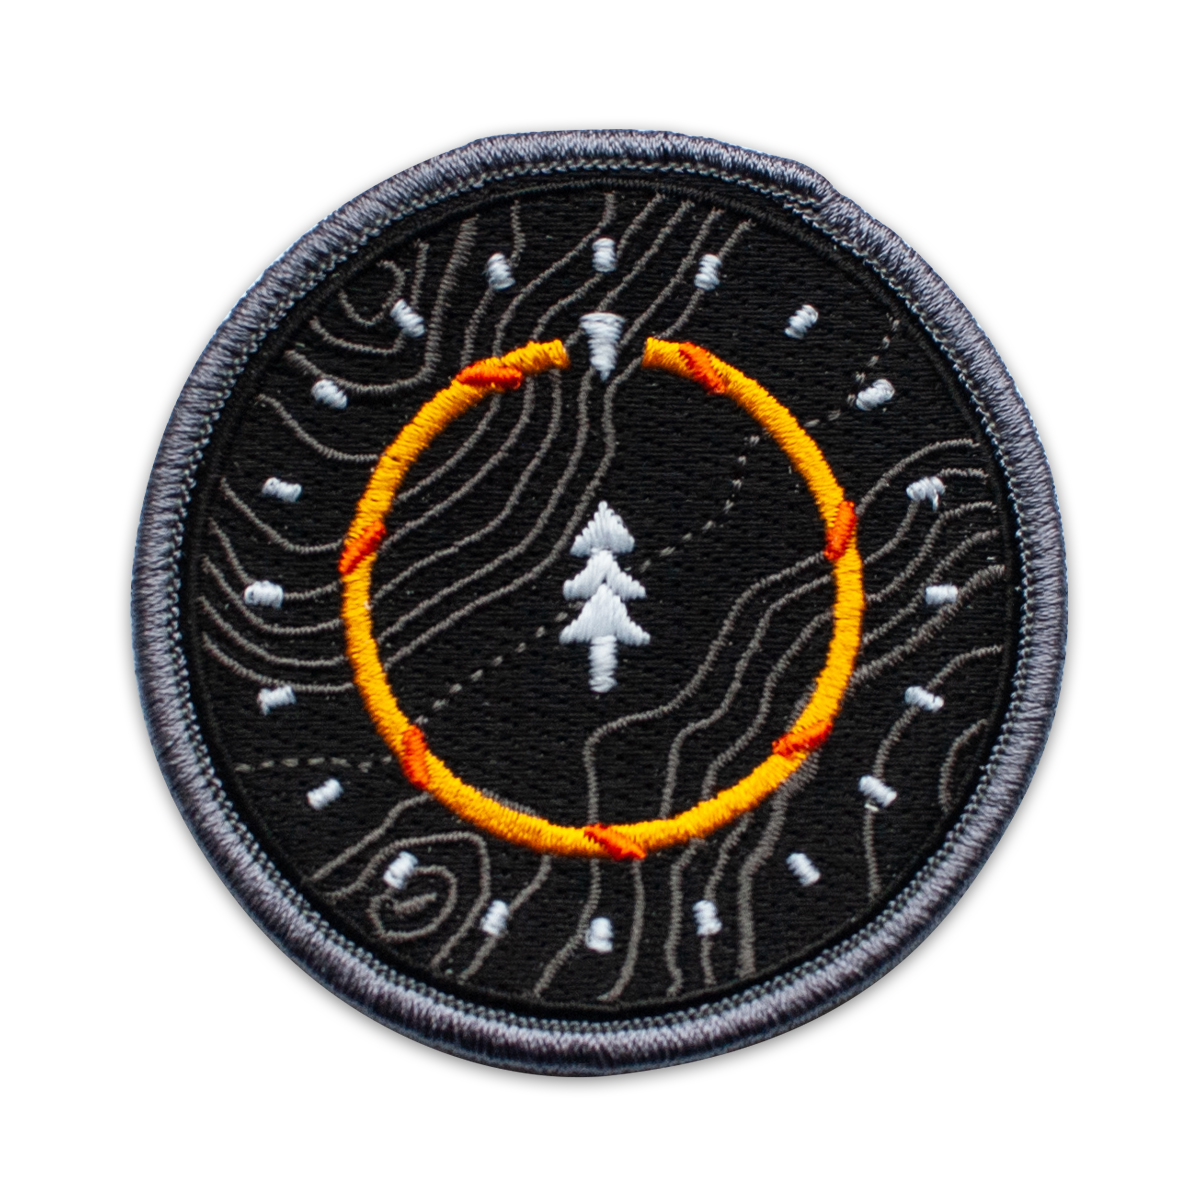 Modern Recon Patch – Bright